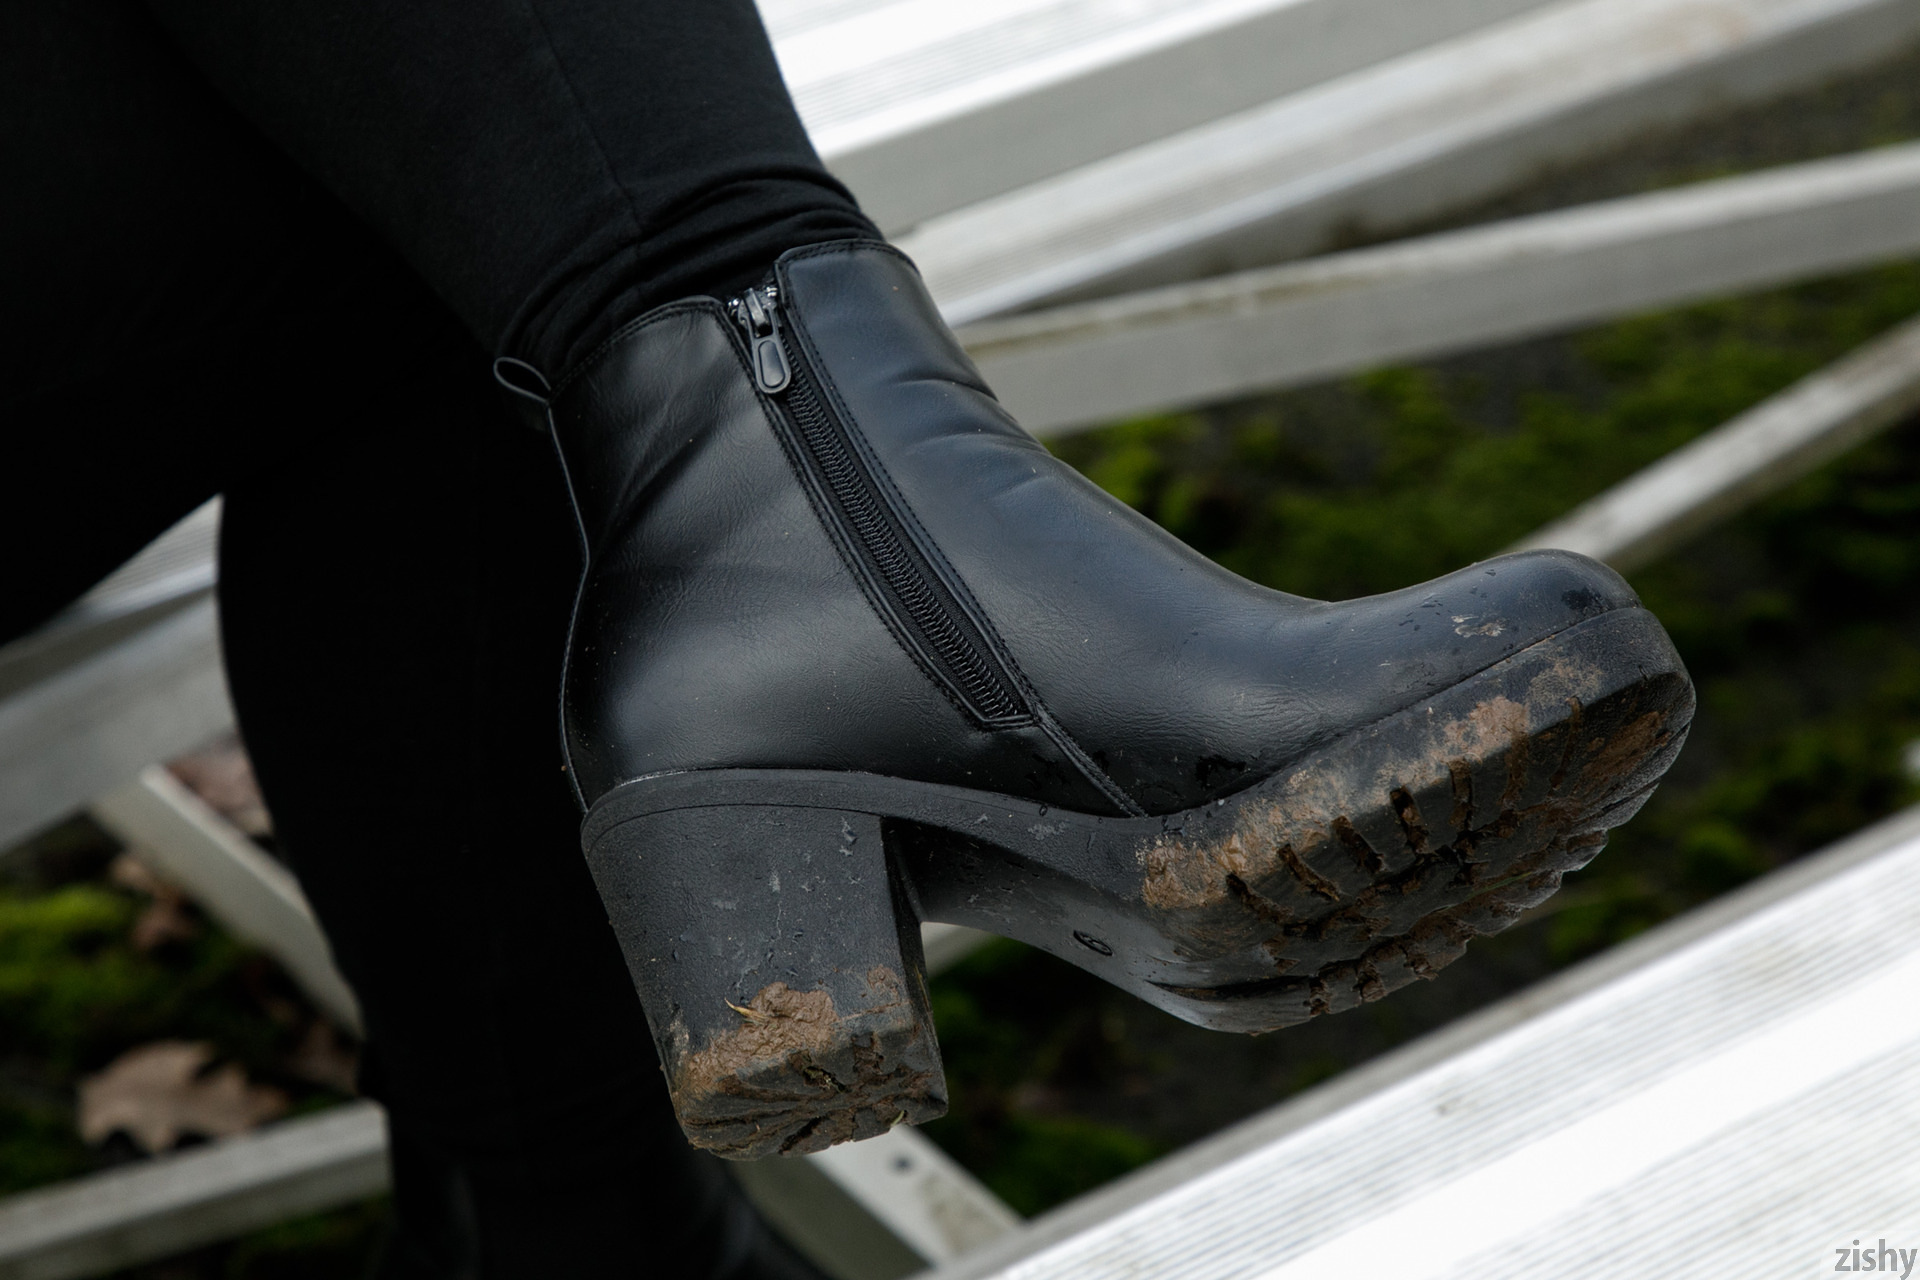 Rose Fessenden Muddy Boot Syndrome Zishy (29)